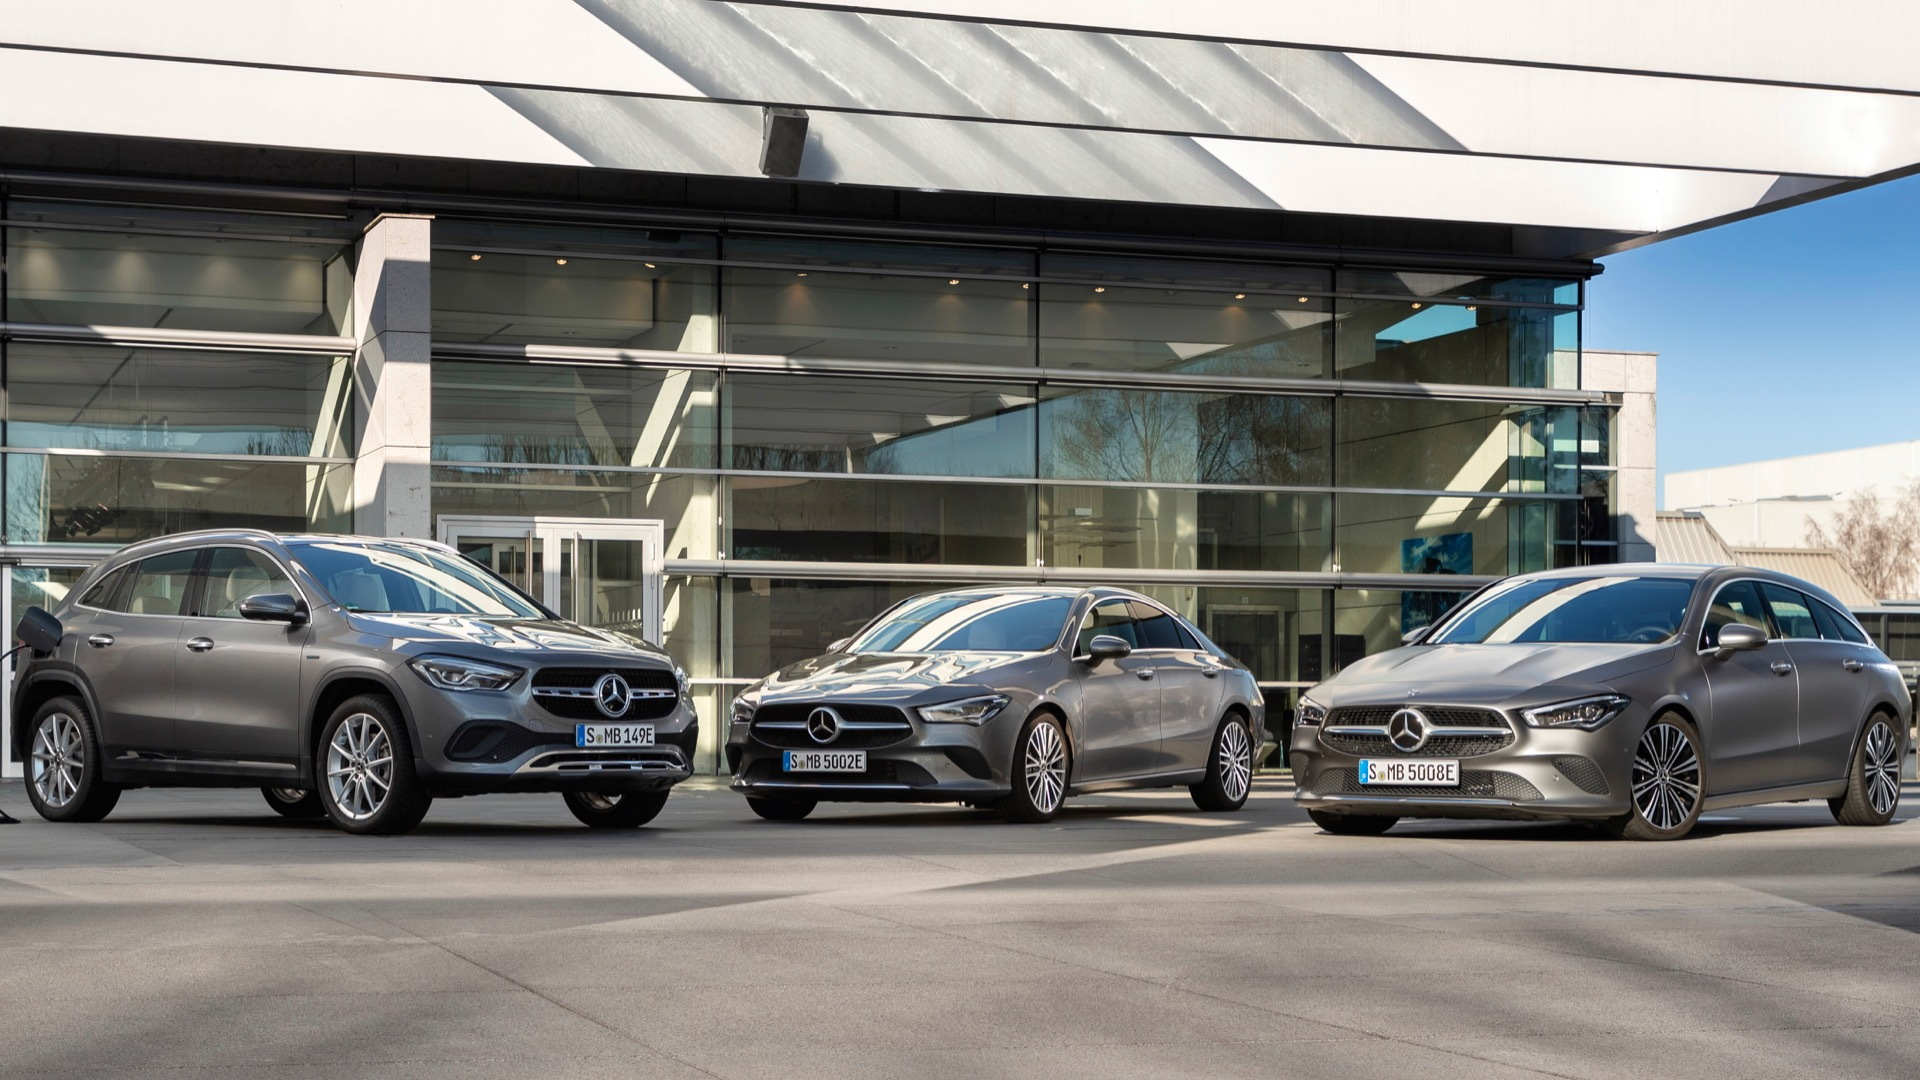 Mercedes-Benz GLA250e, CLA250e, and CLA250e Shooting Brake